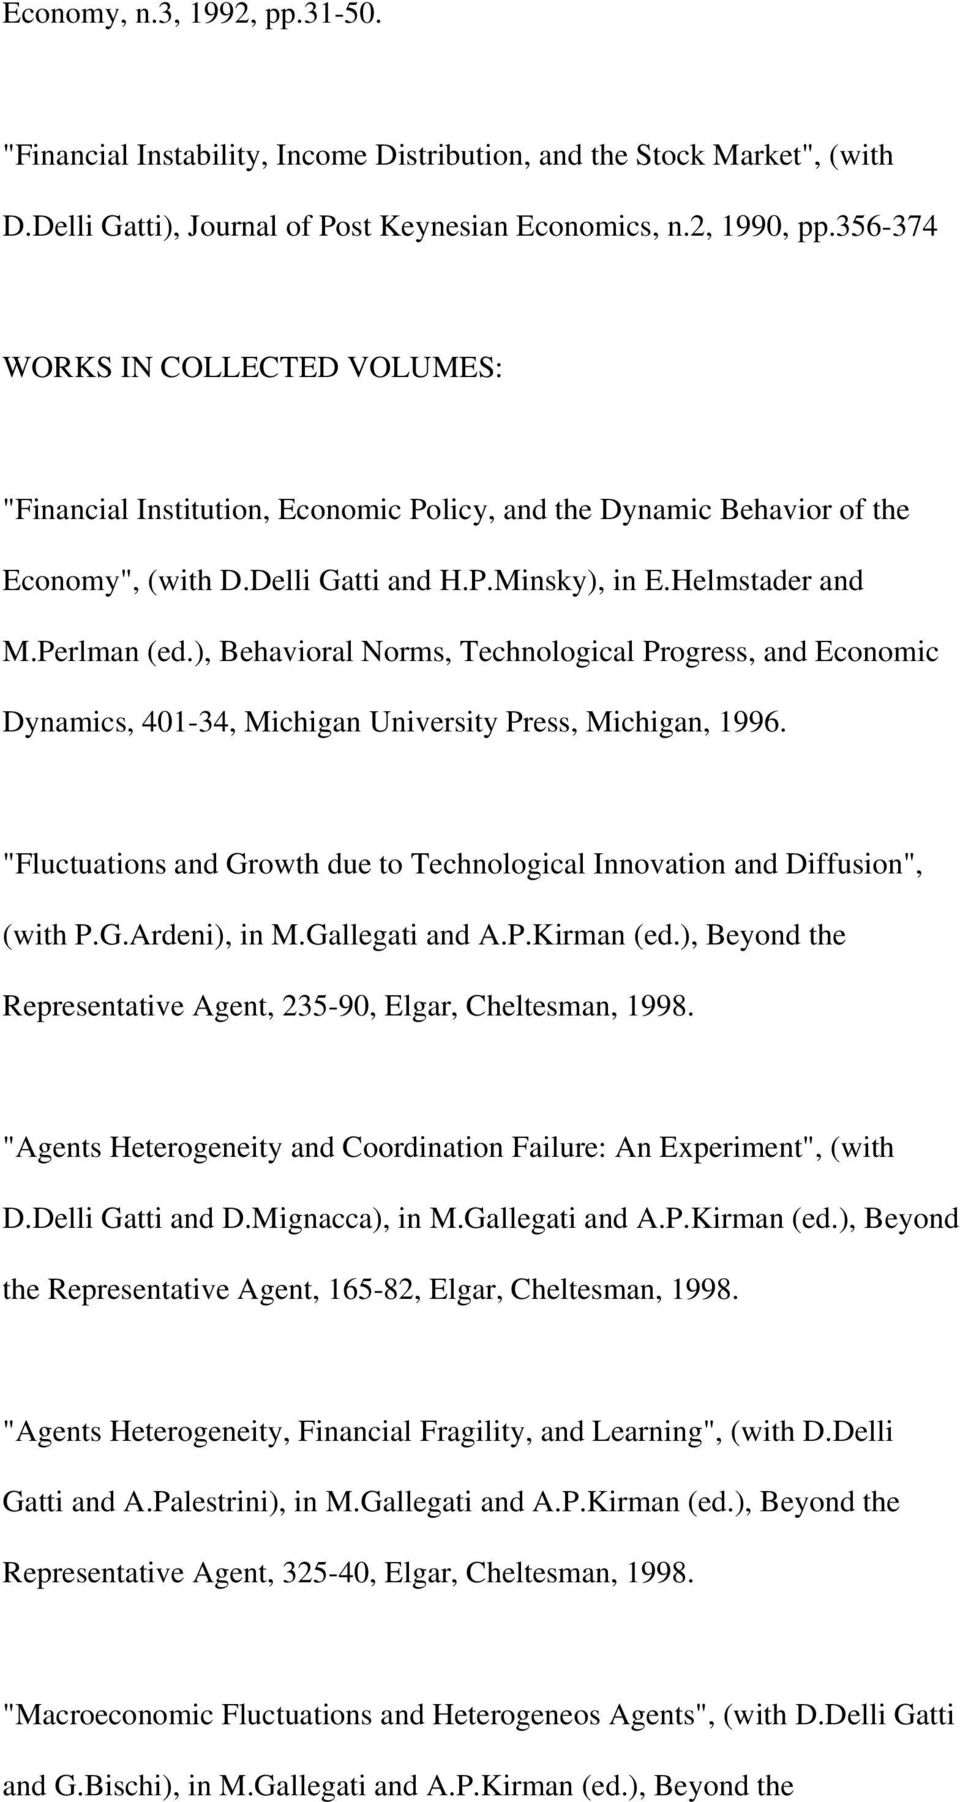 "), Behavioral Norms, Technological Progress, and Economic Dynamics, 401-34, Michigan University Press, Michigan, 1996. ""Fluctuations and Growth due to Technological Innovation and Diffusion"", (with P."